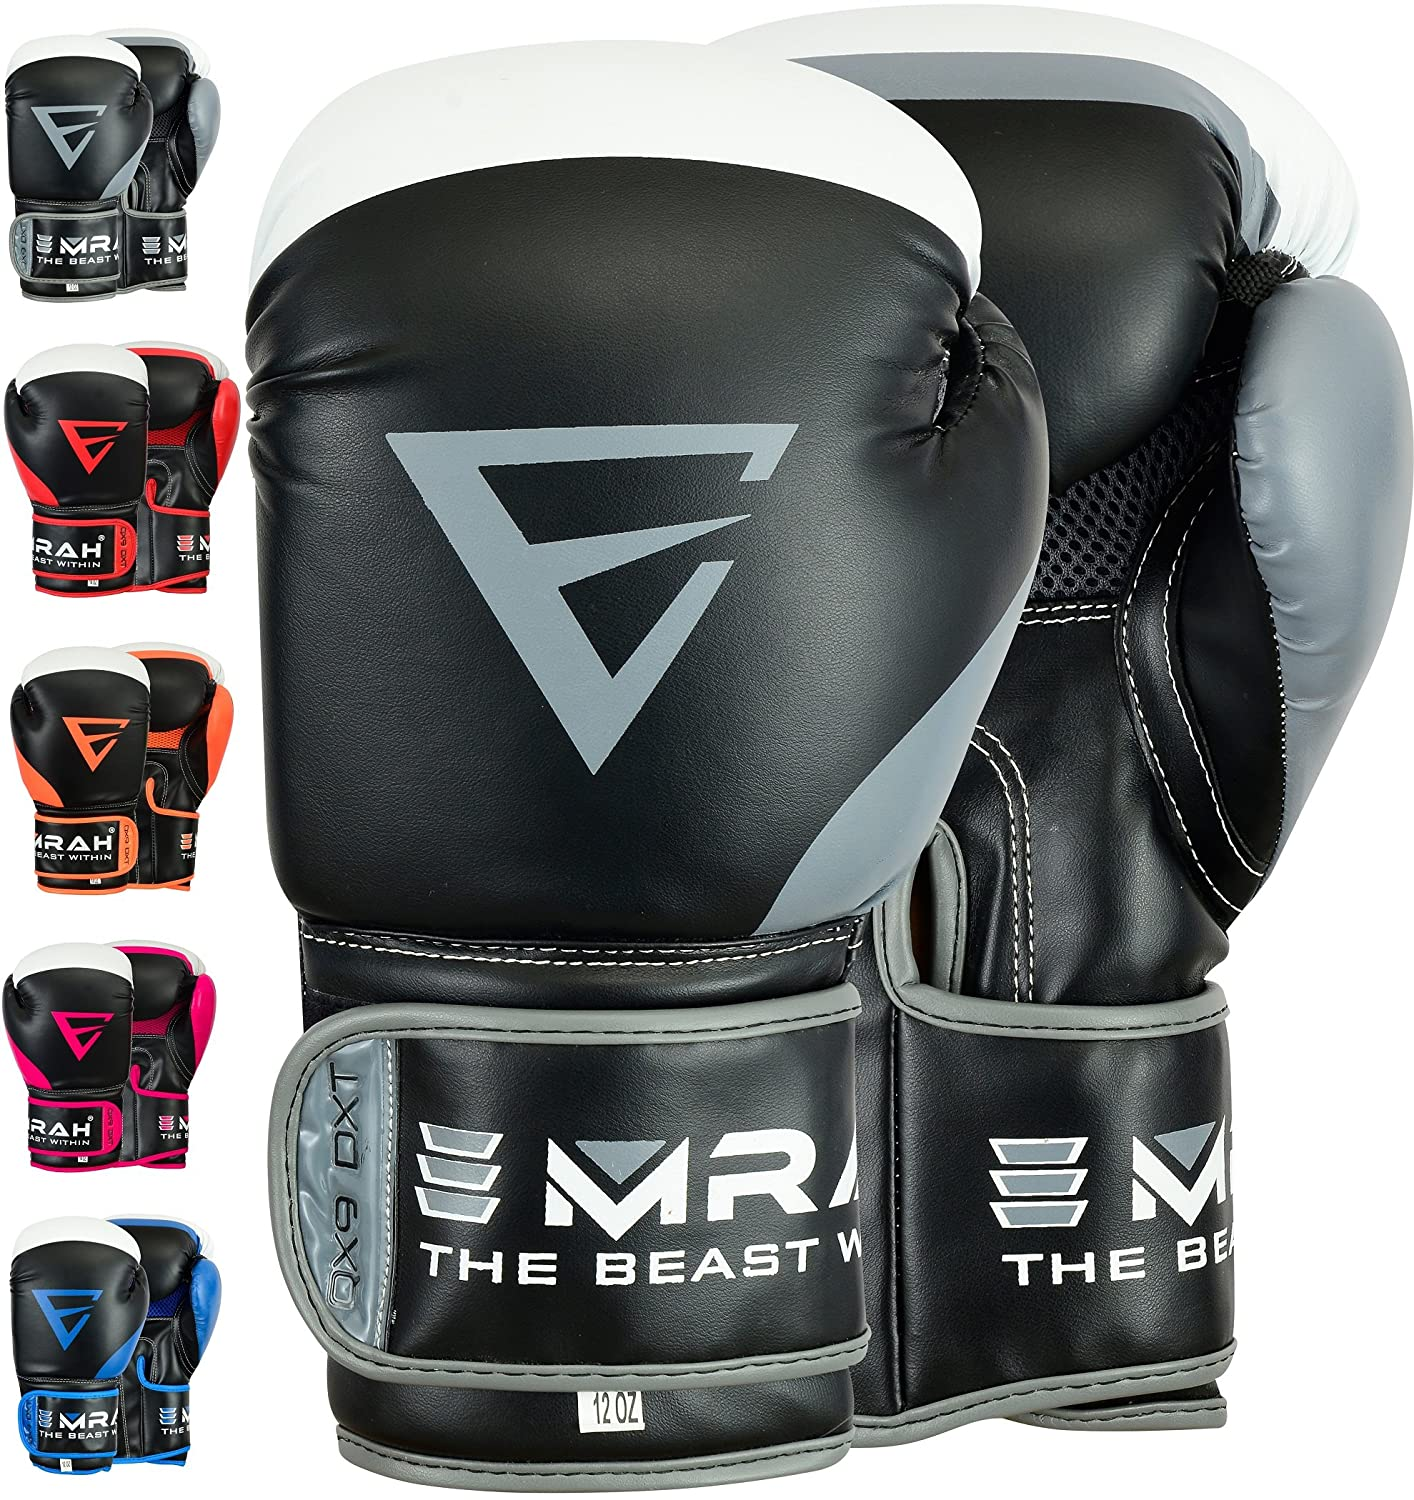 emrah charged v2 boxing gloves